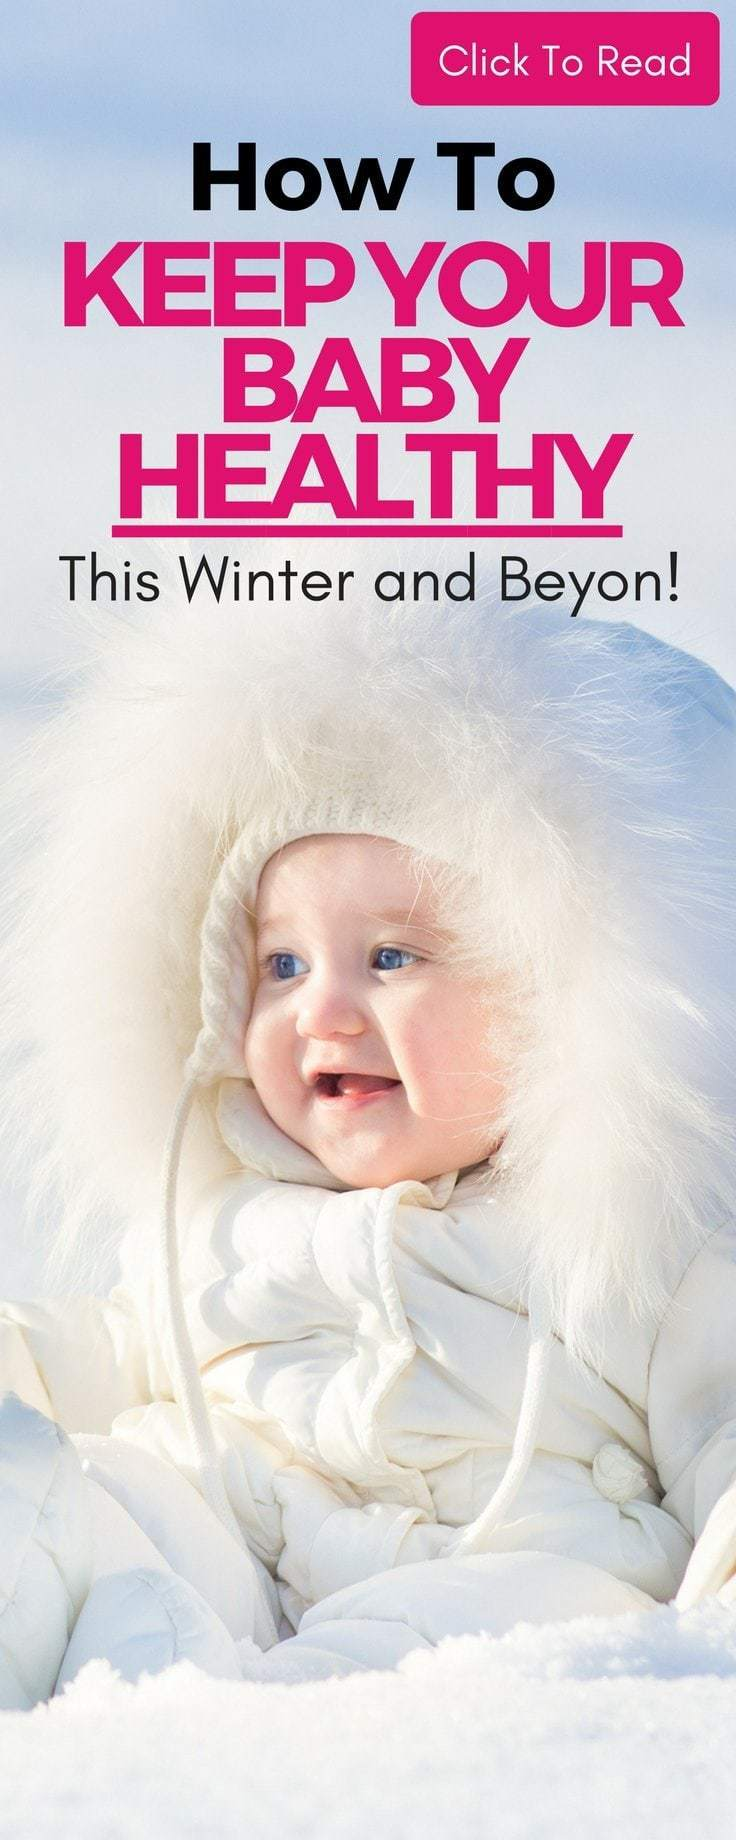 Best tips for keeping your baby or newborn healthy this winter! Winter babies come with their own sets of challenges, so learn some great tips from a mom who has had two winter babies! #healthybaby #winterbaby #coldandfluprevention #coldandflutips #wintertips